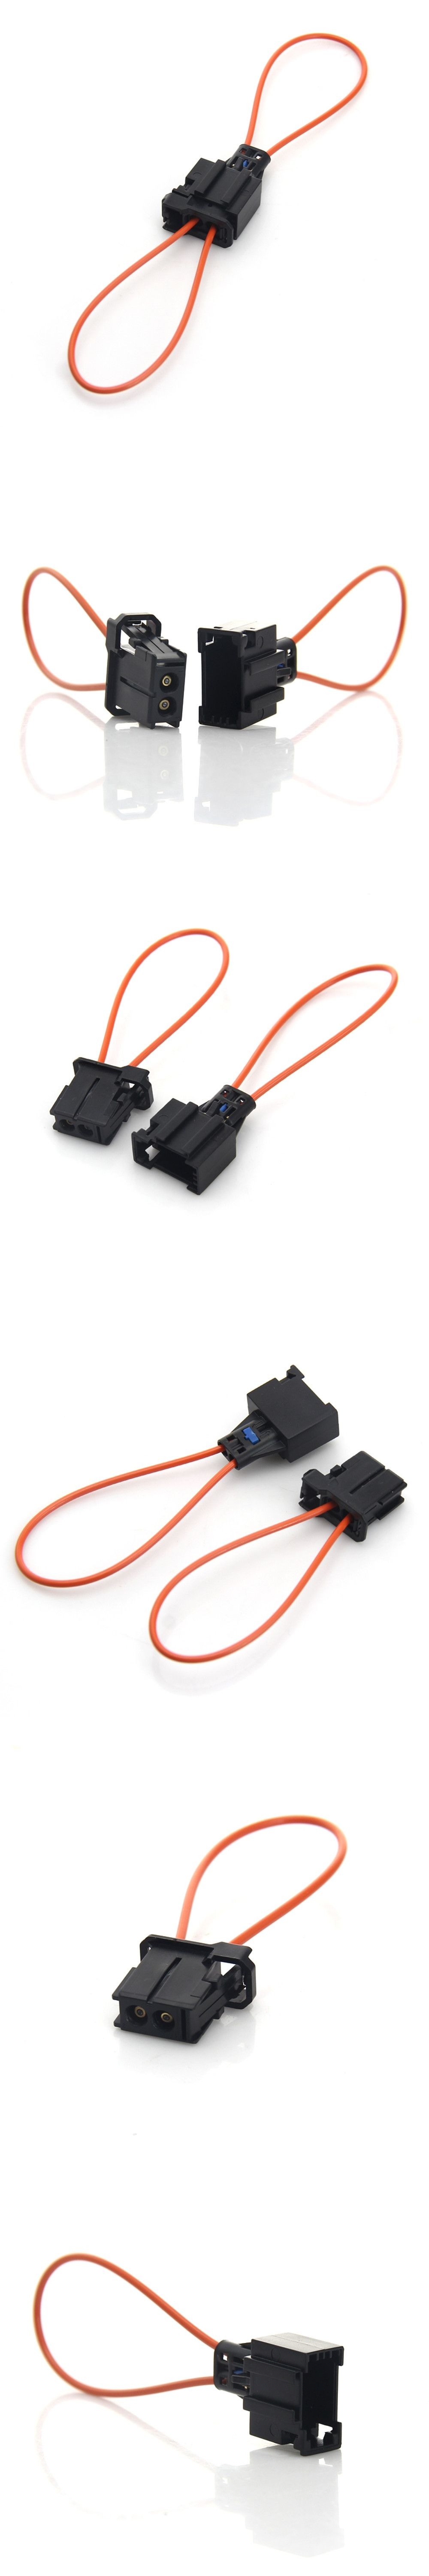 Pair Most Fiber Optic Loop Bypass Male To Female Connector Car Porsche Wiring Connectors Diagnostic Cable For Audi Bmw